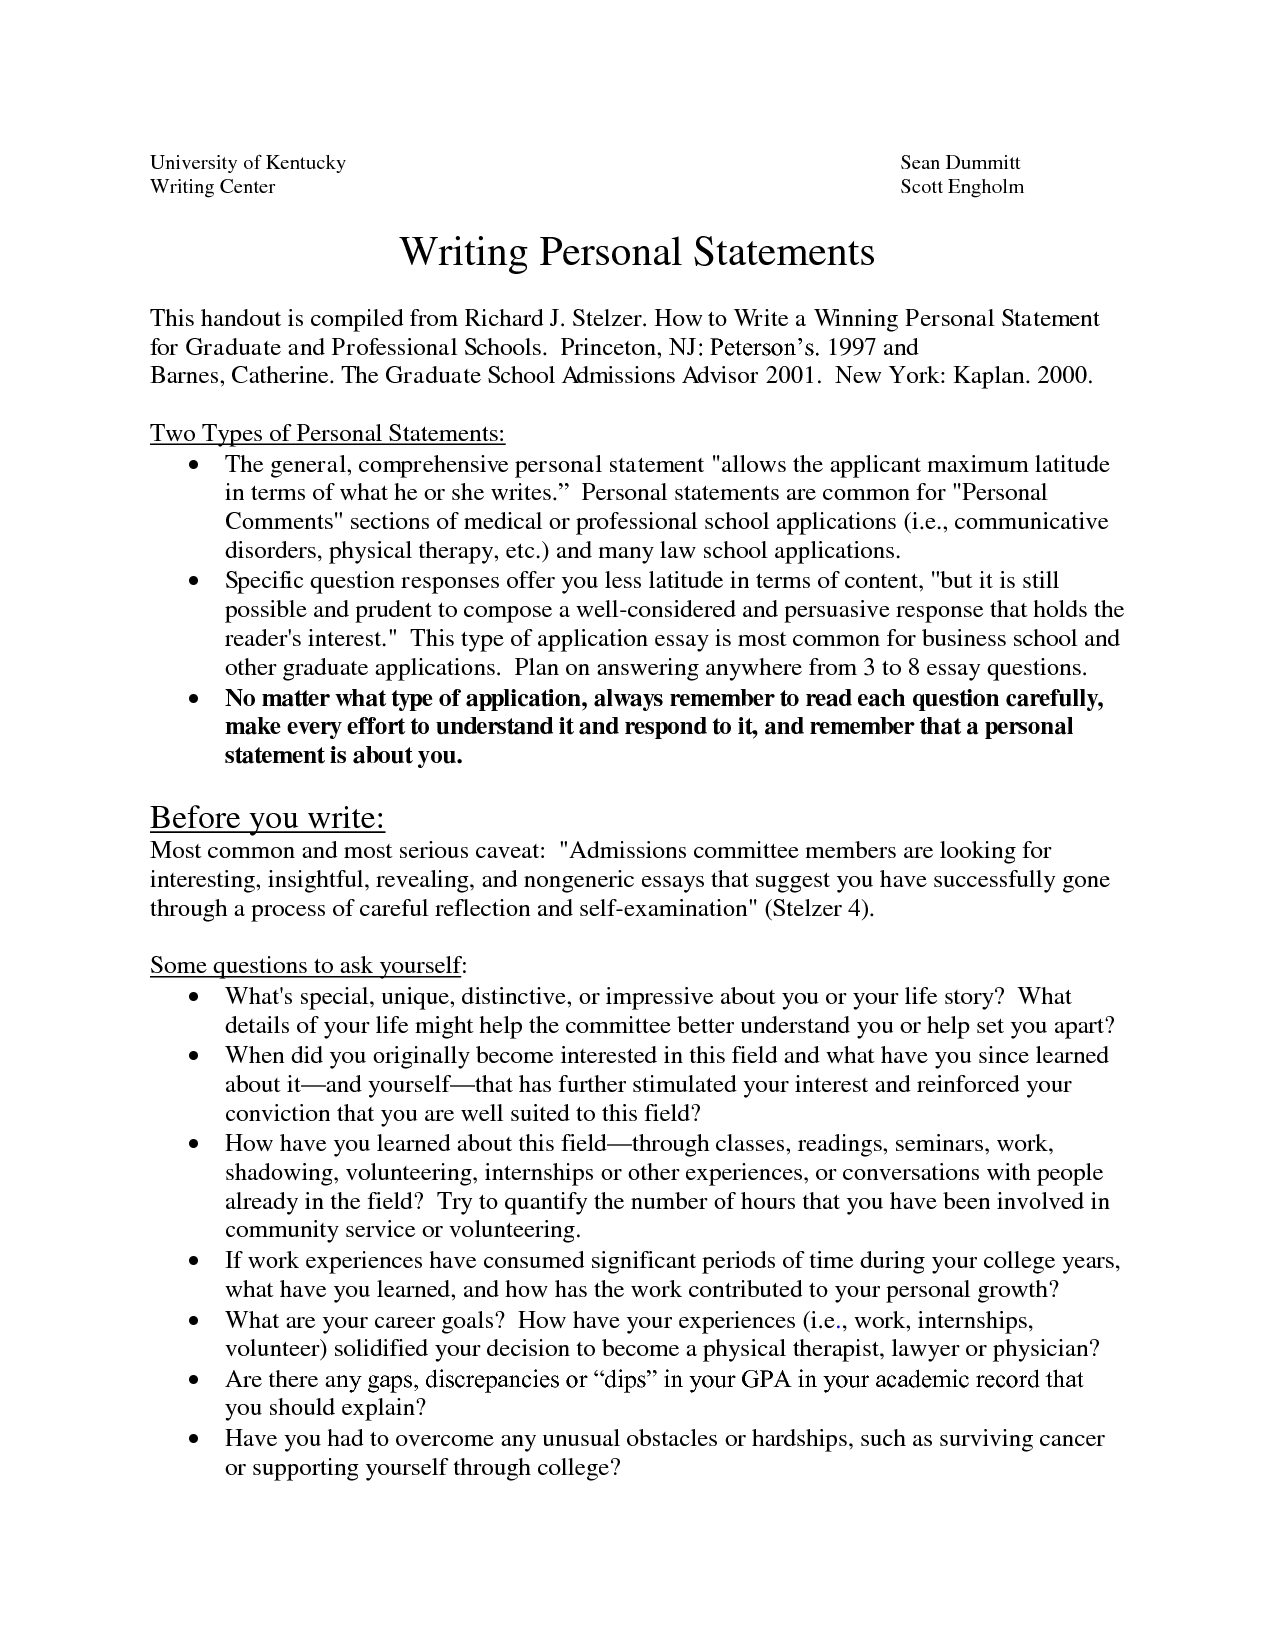 Cause And Effect Essay Thesis  How To Write A Proposal Essay Paper also Good Synthesis Essay Topics Sample Personal Statements Graduate School  How To Write A  From Thesis To Essay Writing